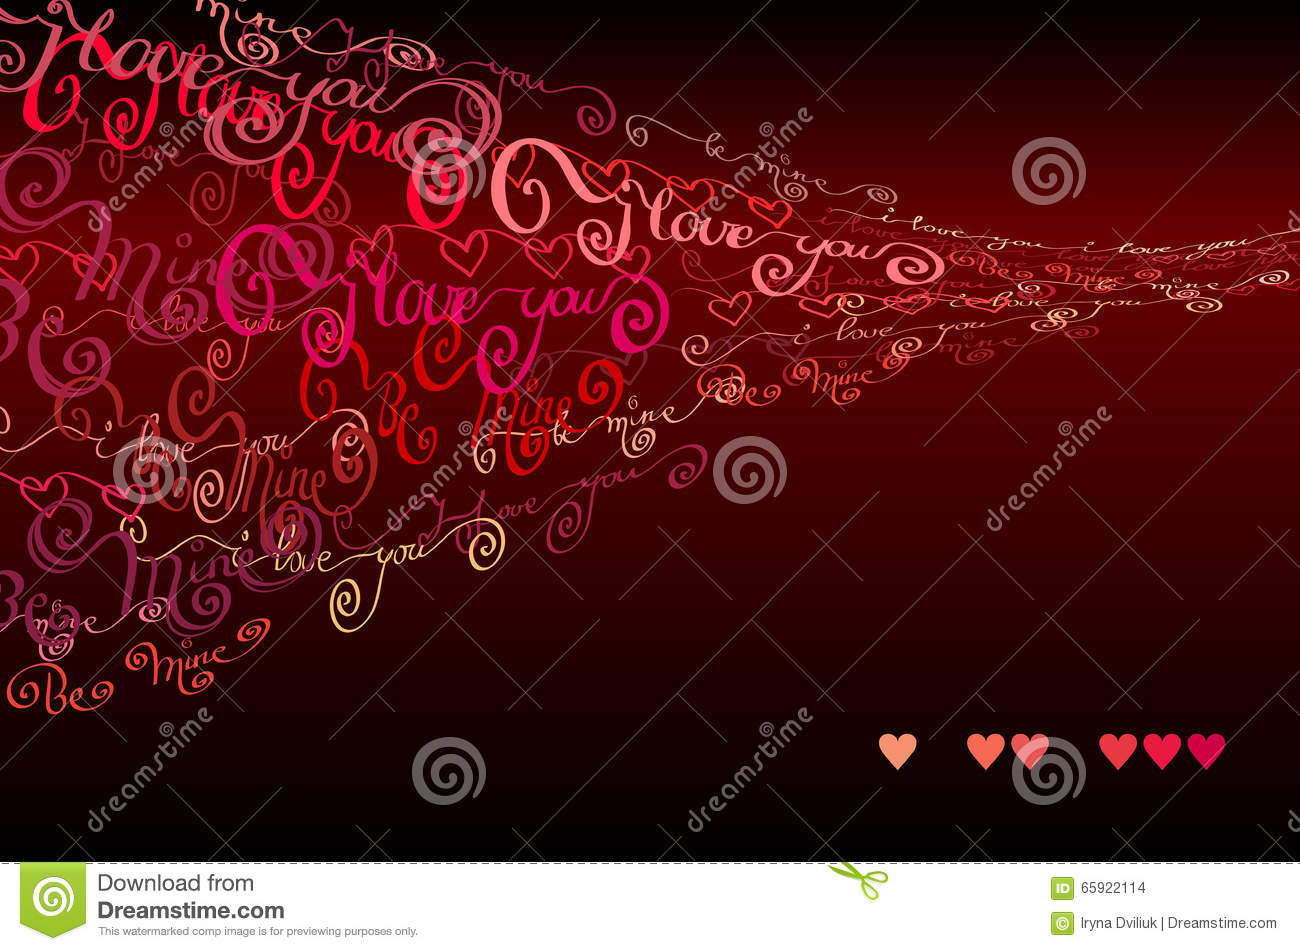 I Love You Words Background Valentines Card Vector Image – Valentines Words for Card